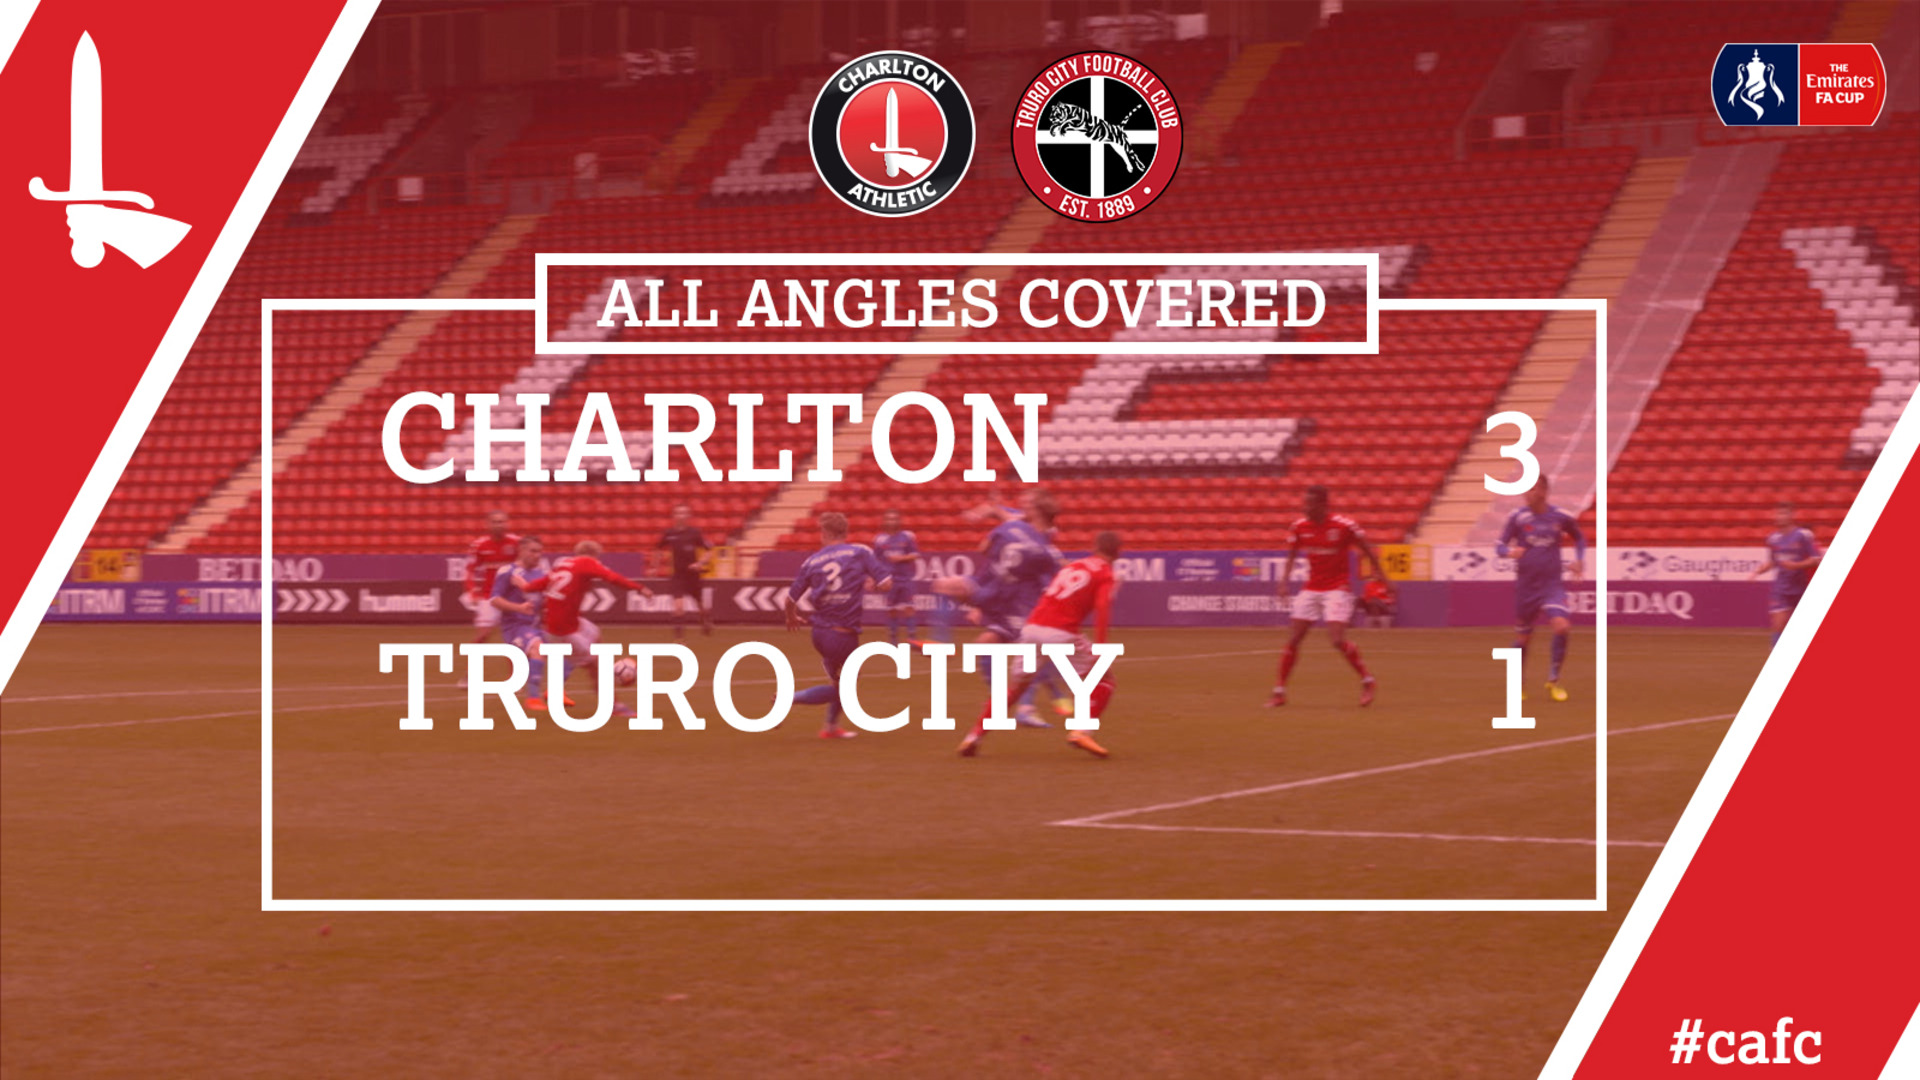 ALL ANGLES COVERED | Charlton 3 Truro City 1